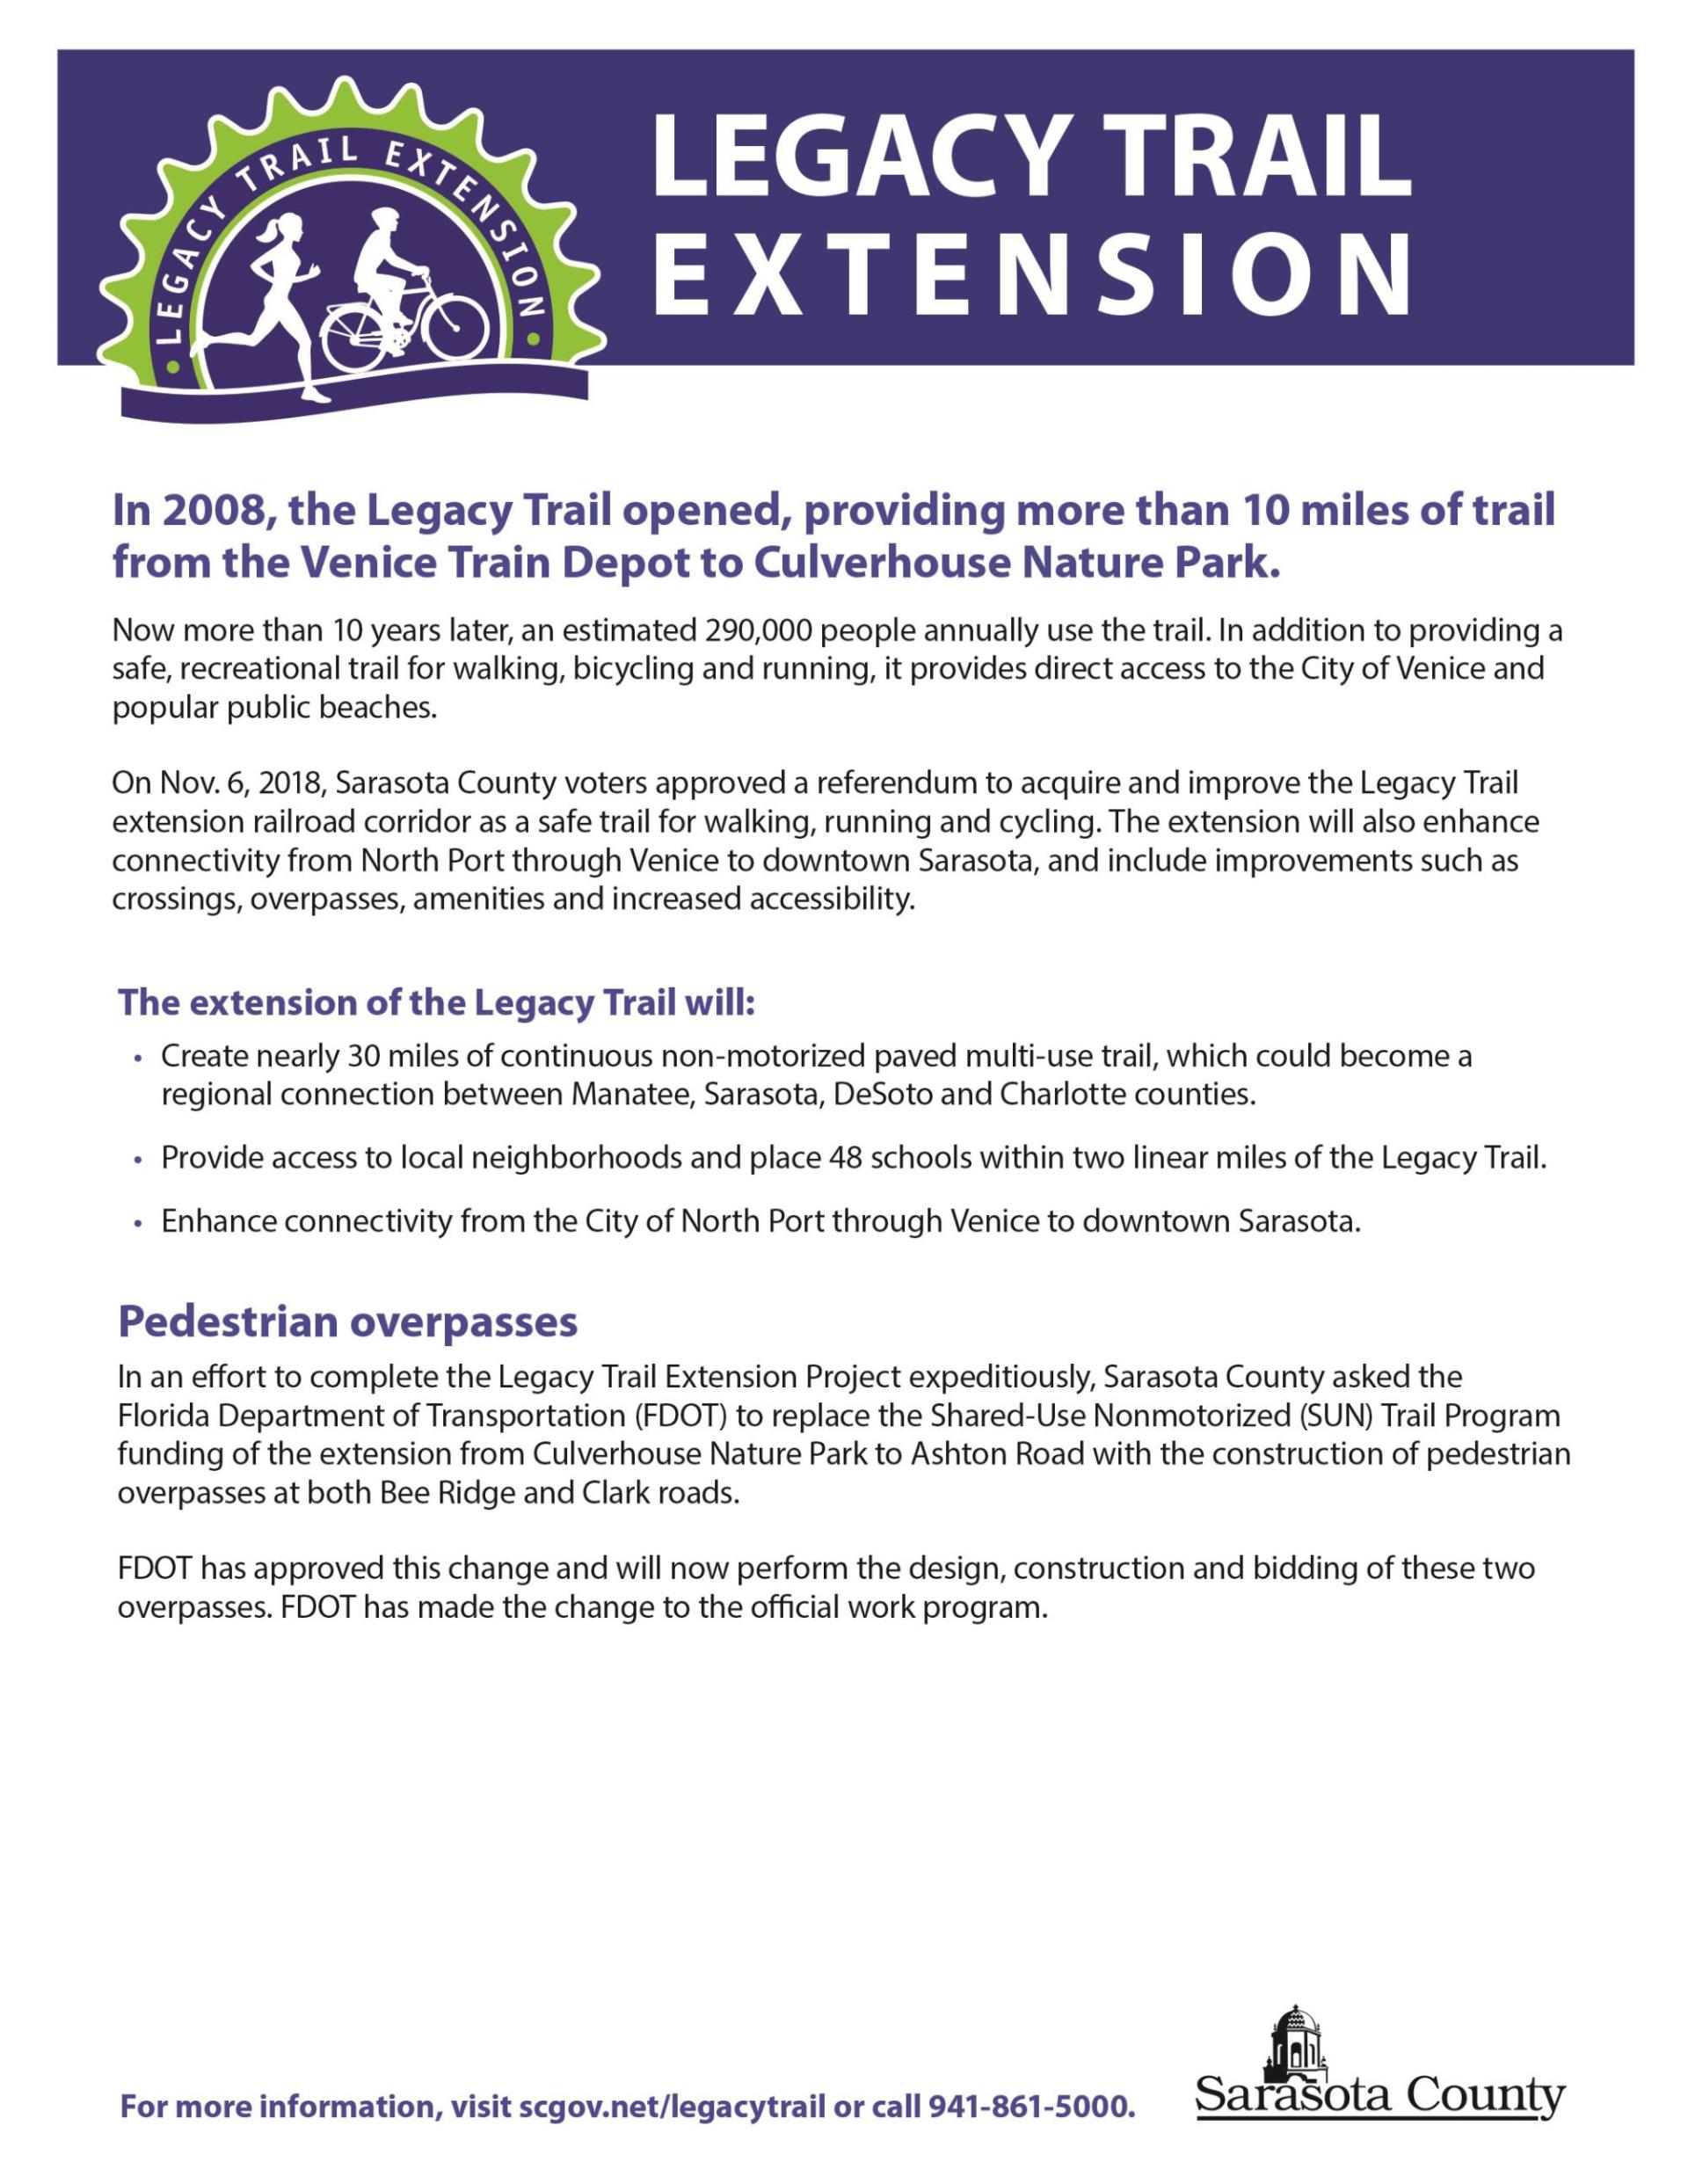 LegacyTrail extension Fact Sheet